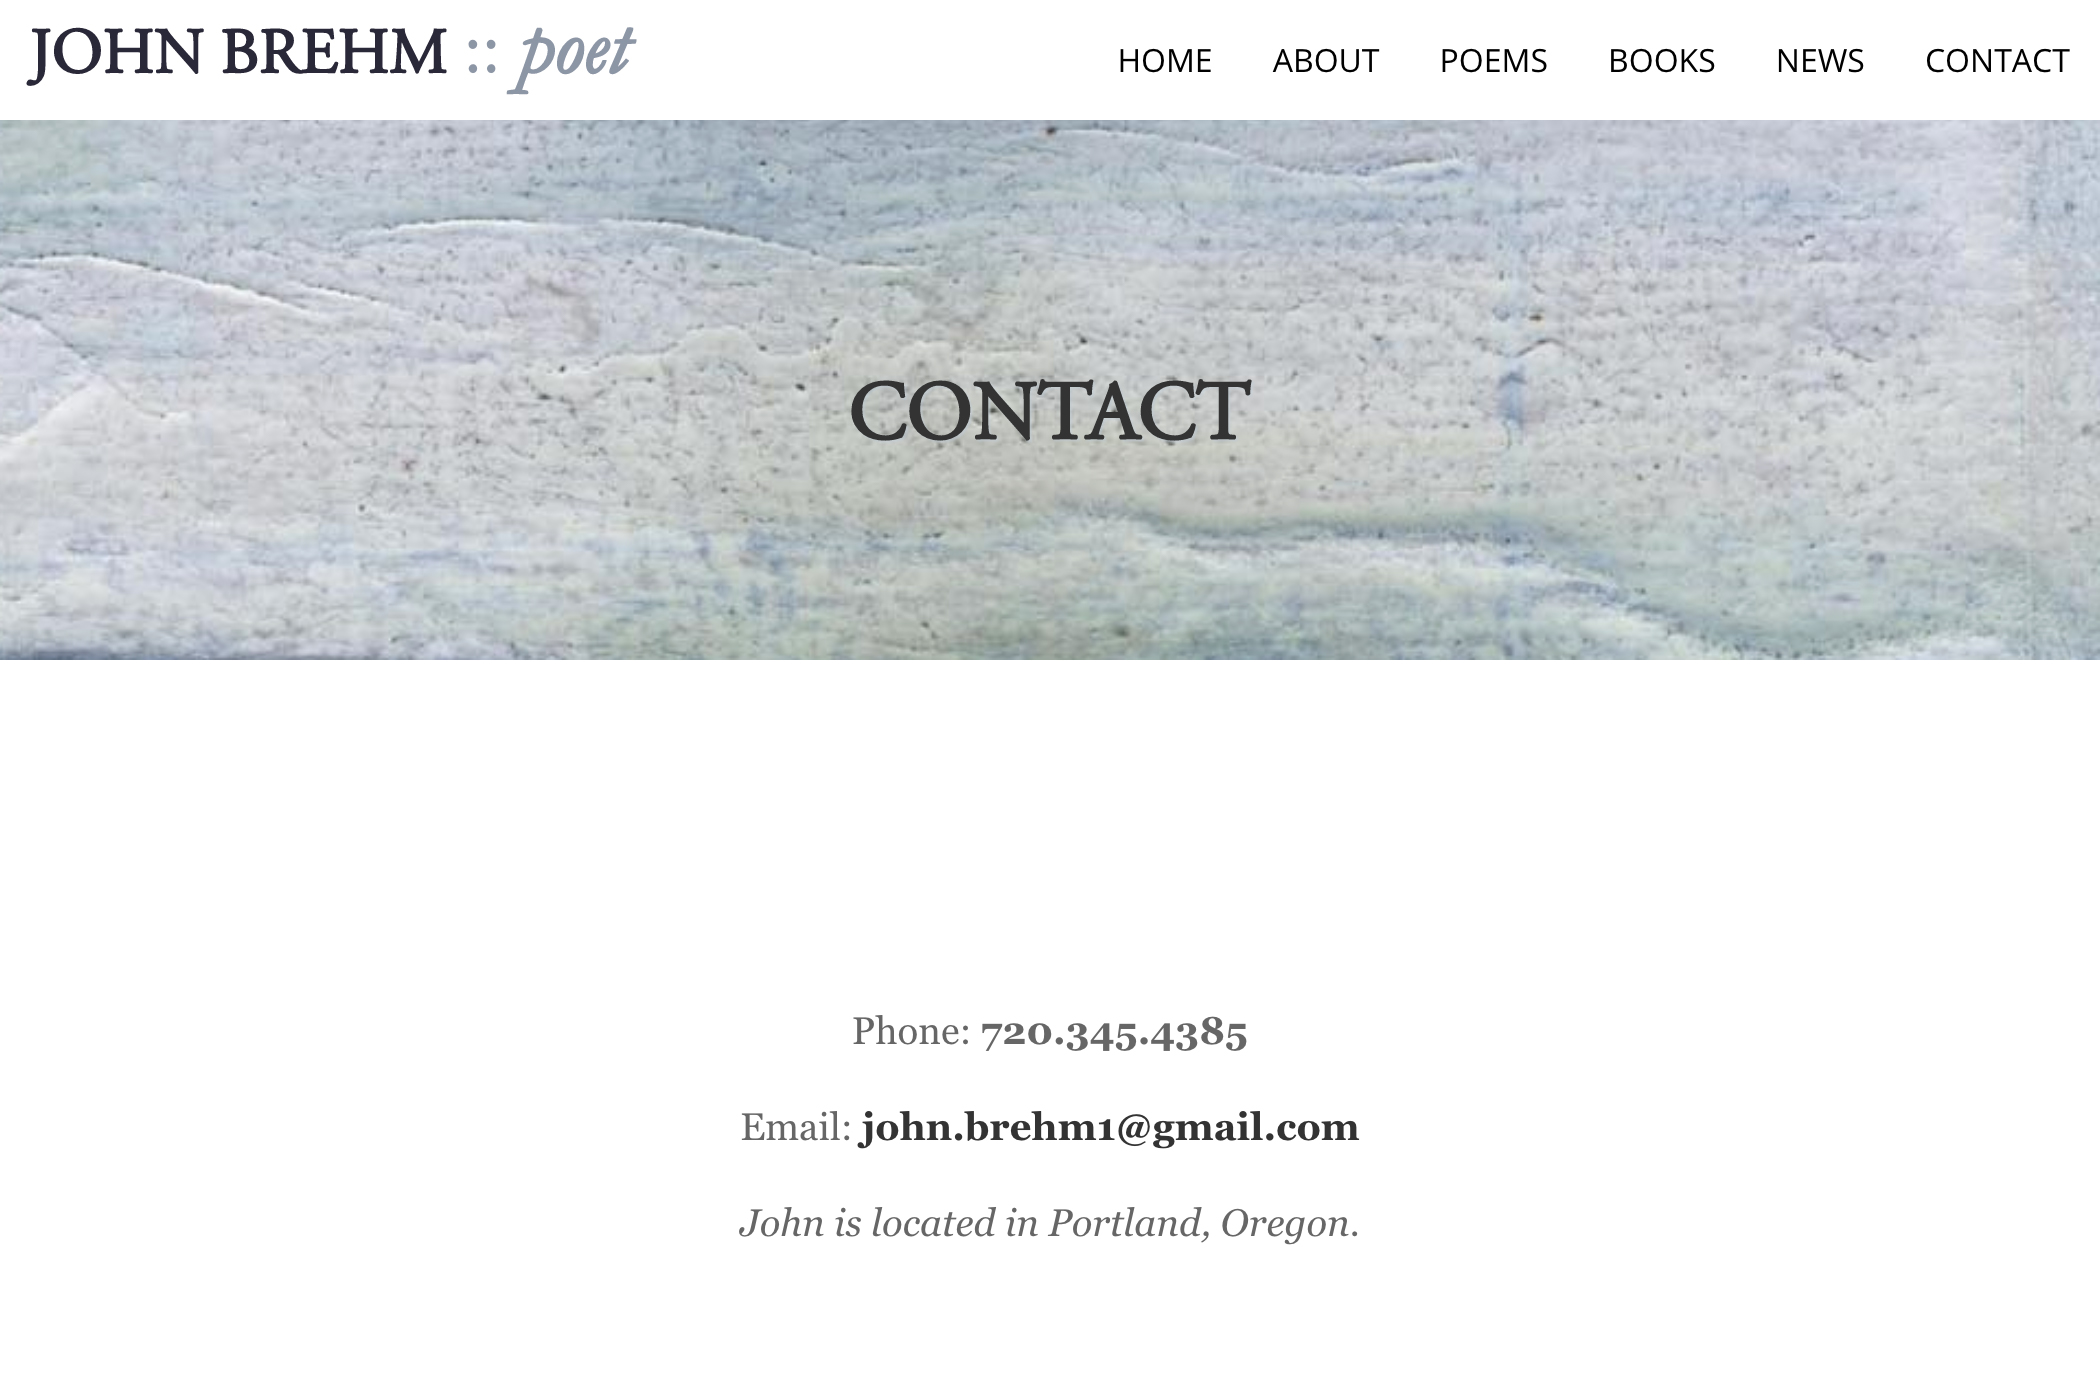 website design for a writer - contact page for a poet